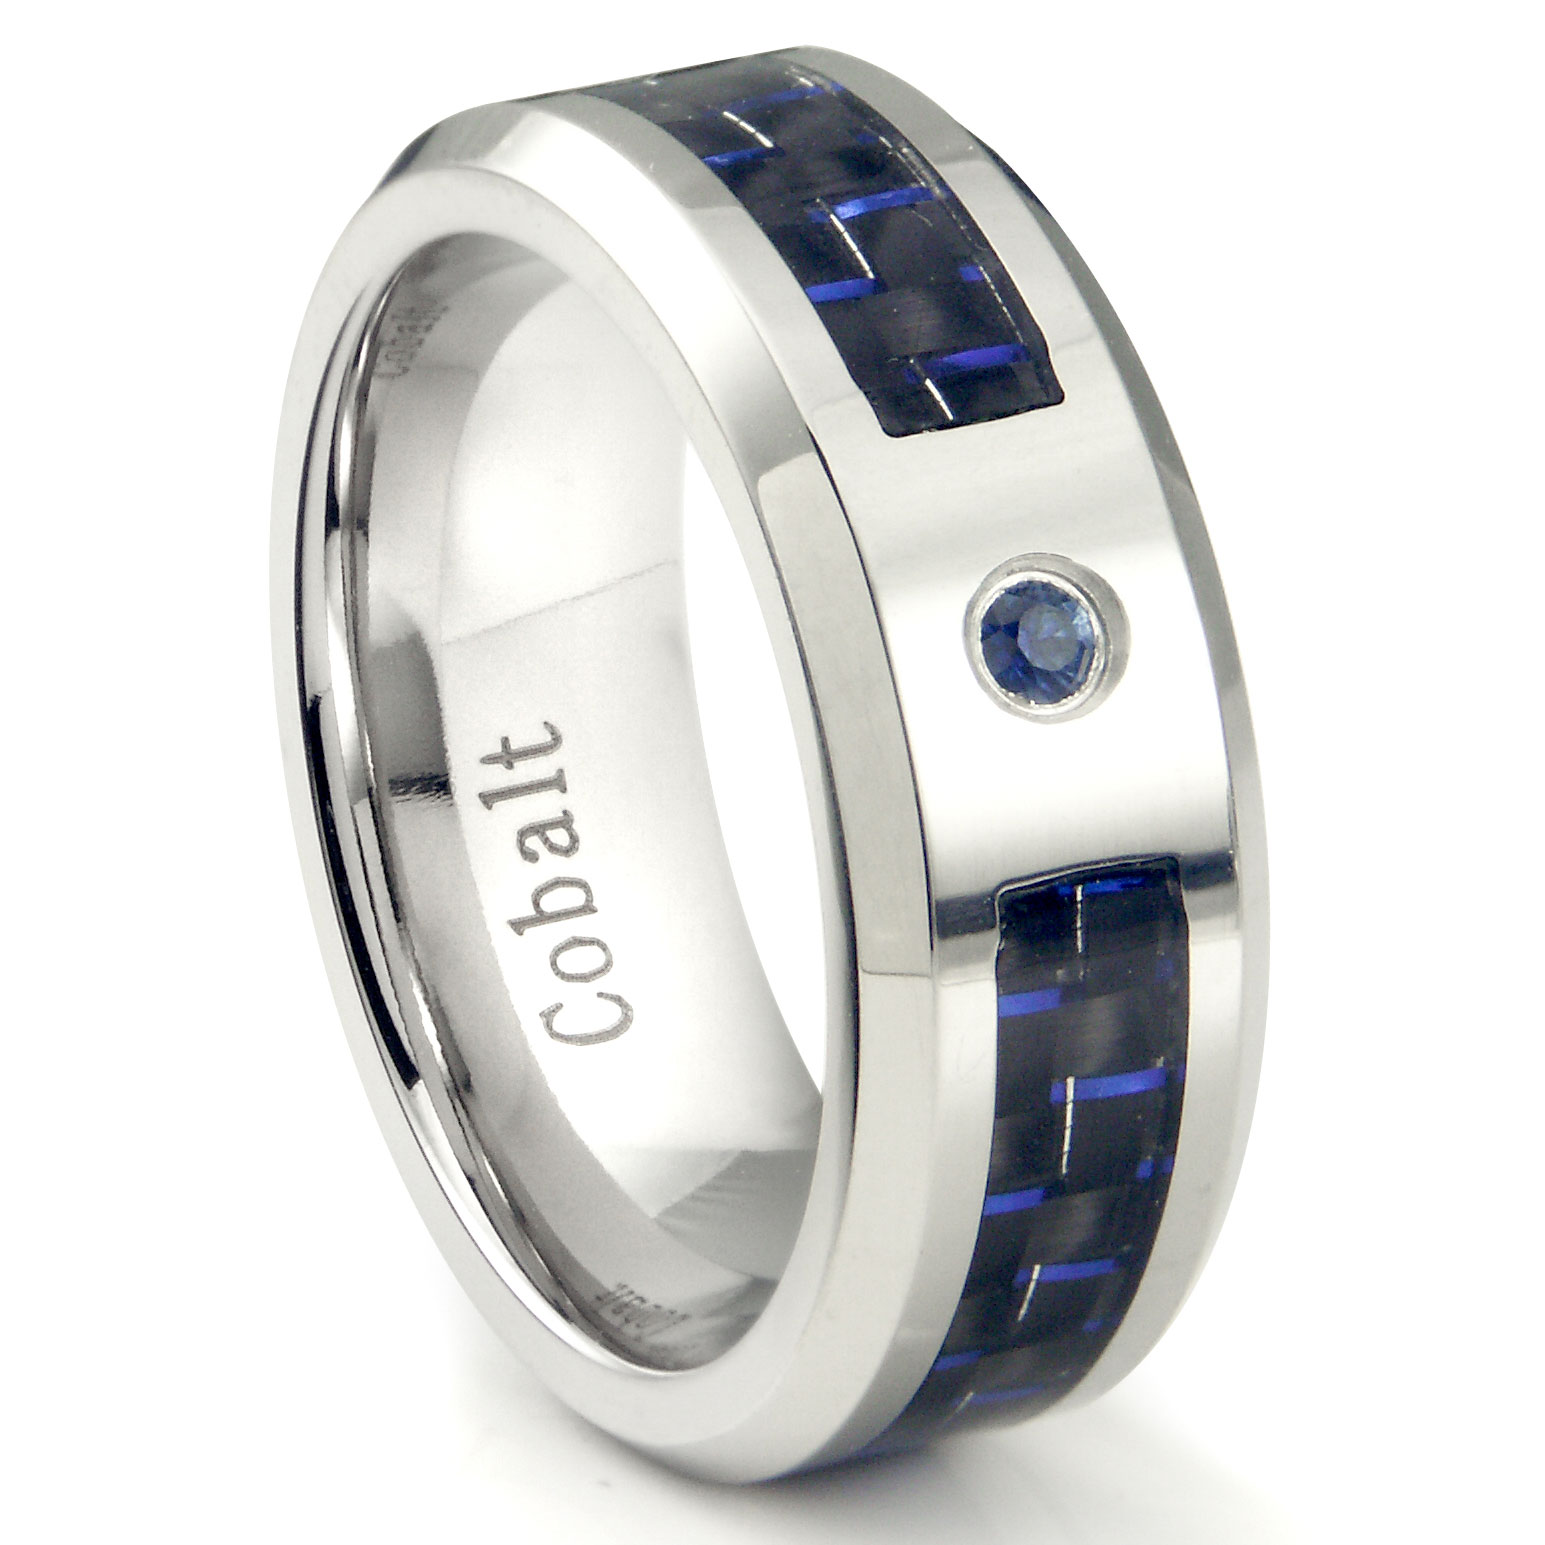 titanium with lena jewelry brand line stainless ring in thin wedding item on men keisha from stone band rings accessories blue new bright punk steel